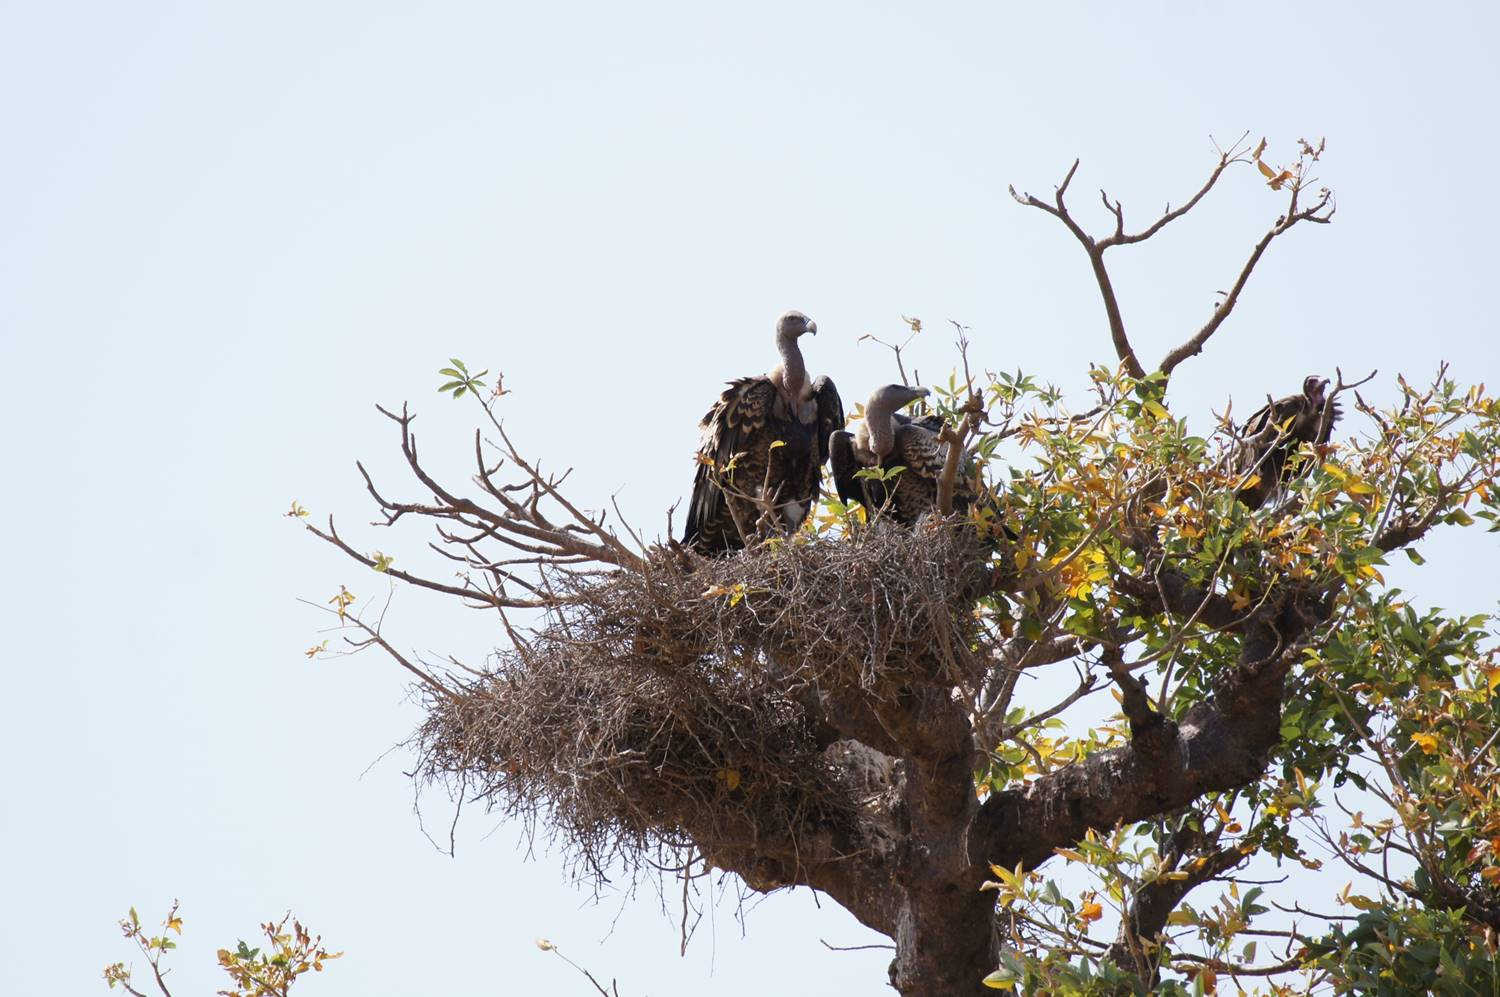 A Hooded Vulture perched near a nesting of Ruppell's Vultures.